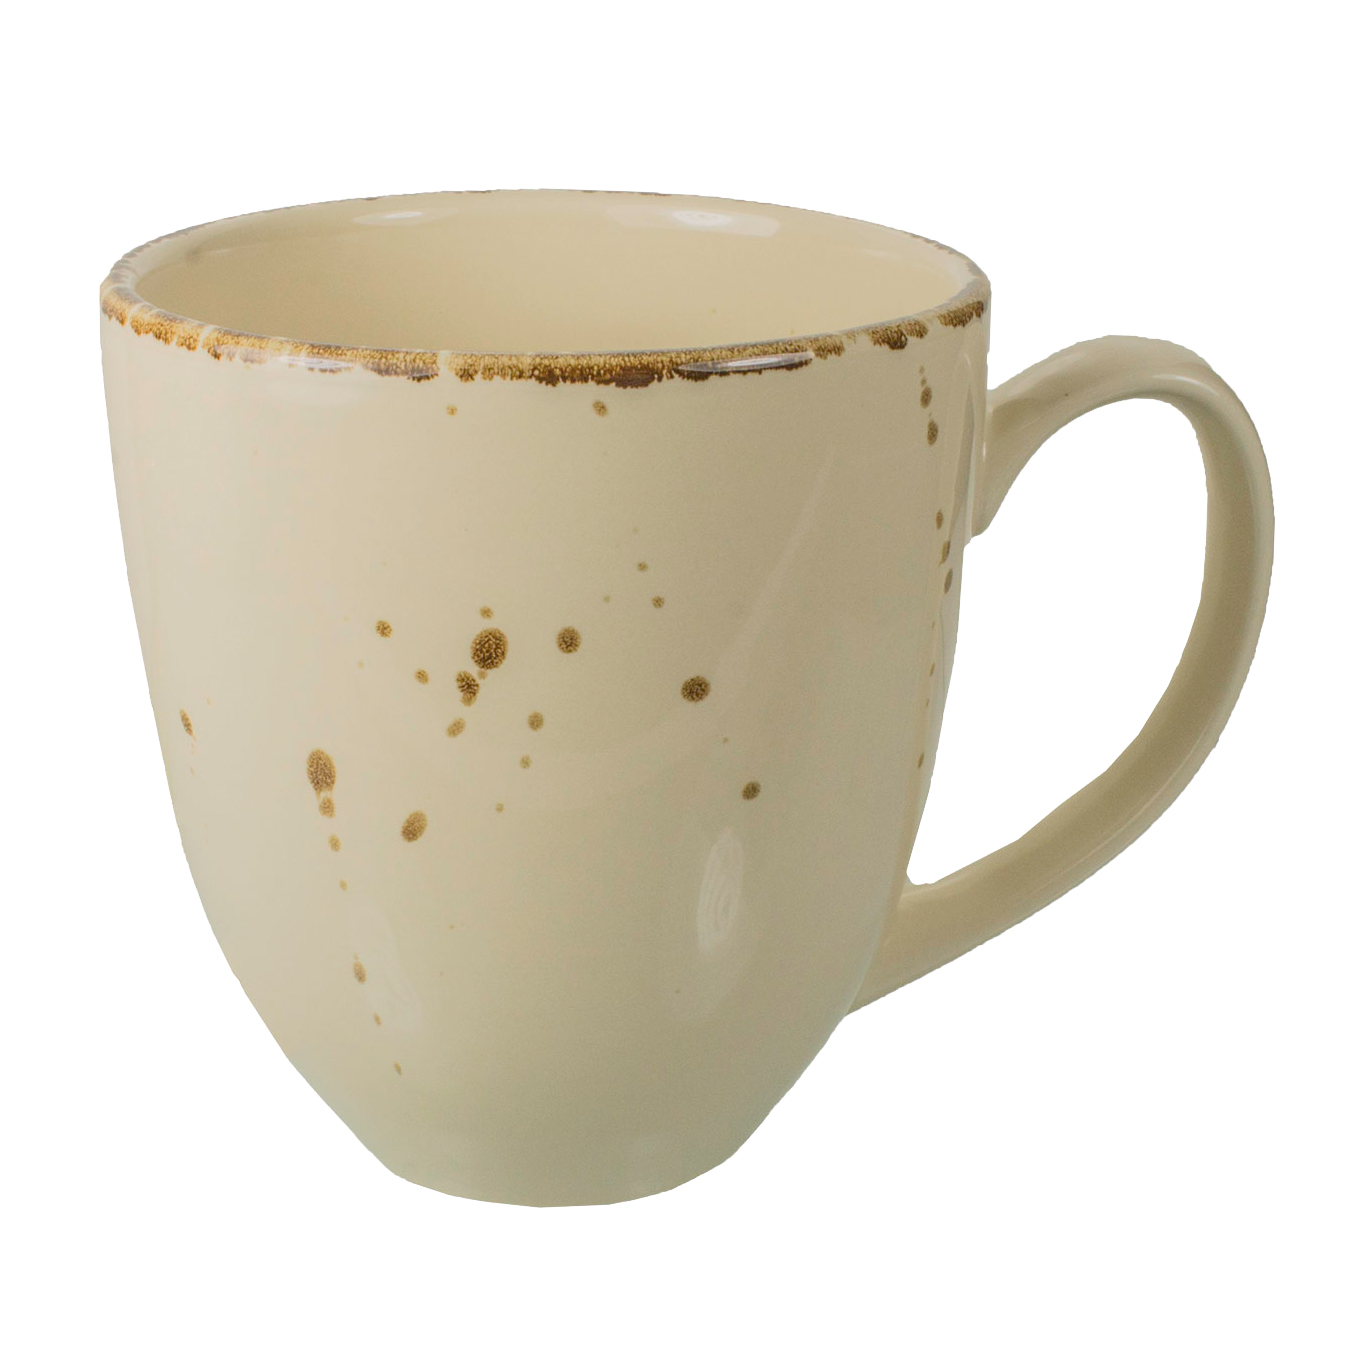 International Tableware 81376-SV-KH mug, china